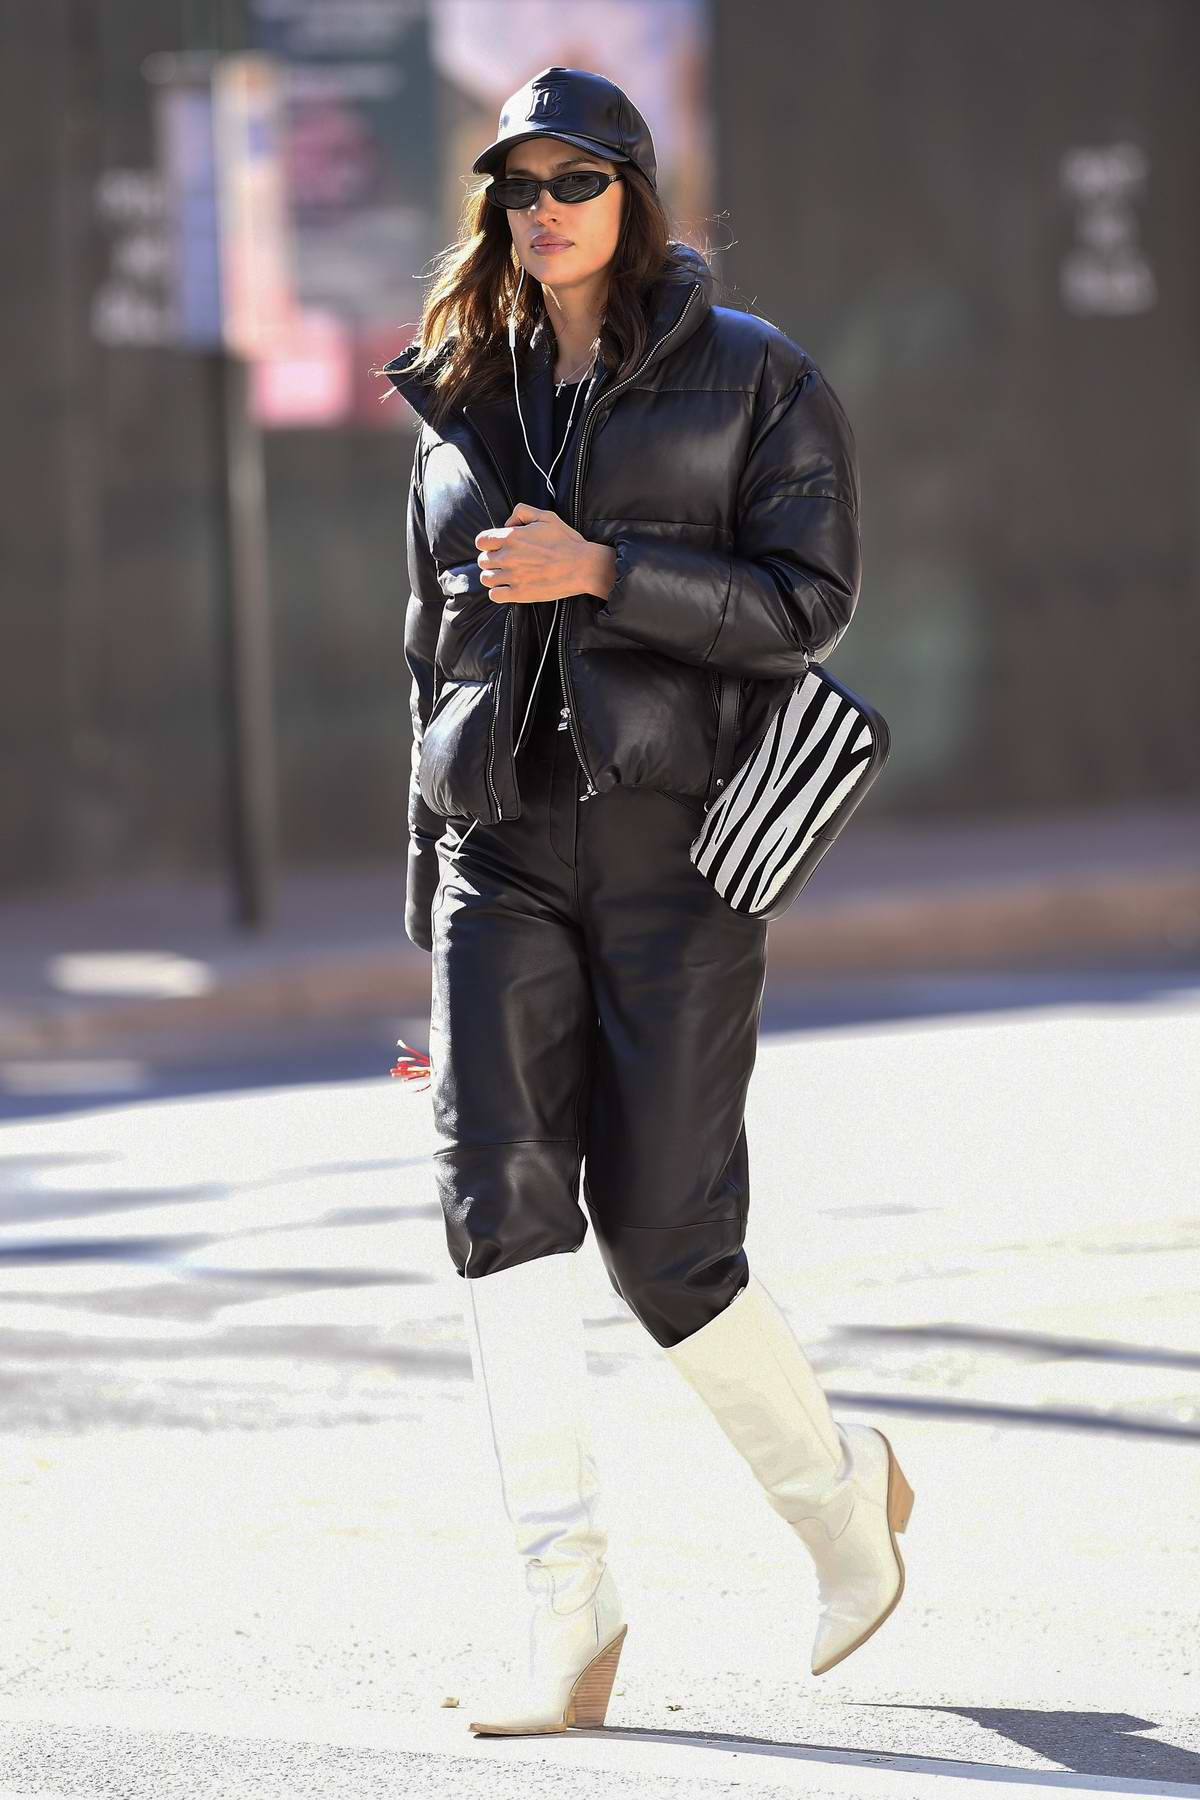 Irina Shayk bundles up on a cold day while heading home after doing her nails in New York City